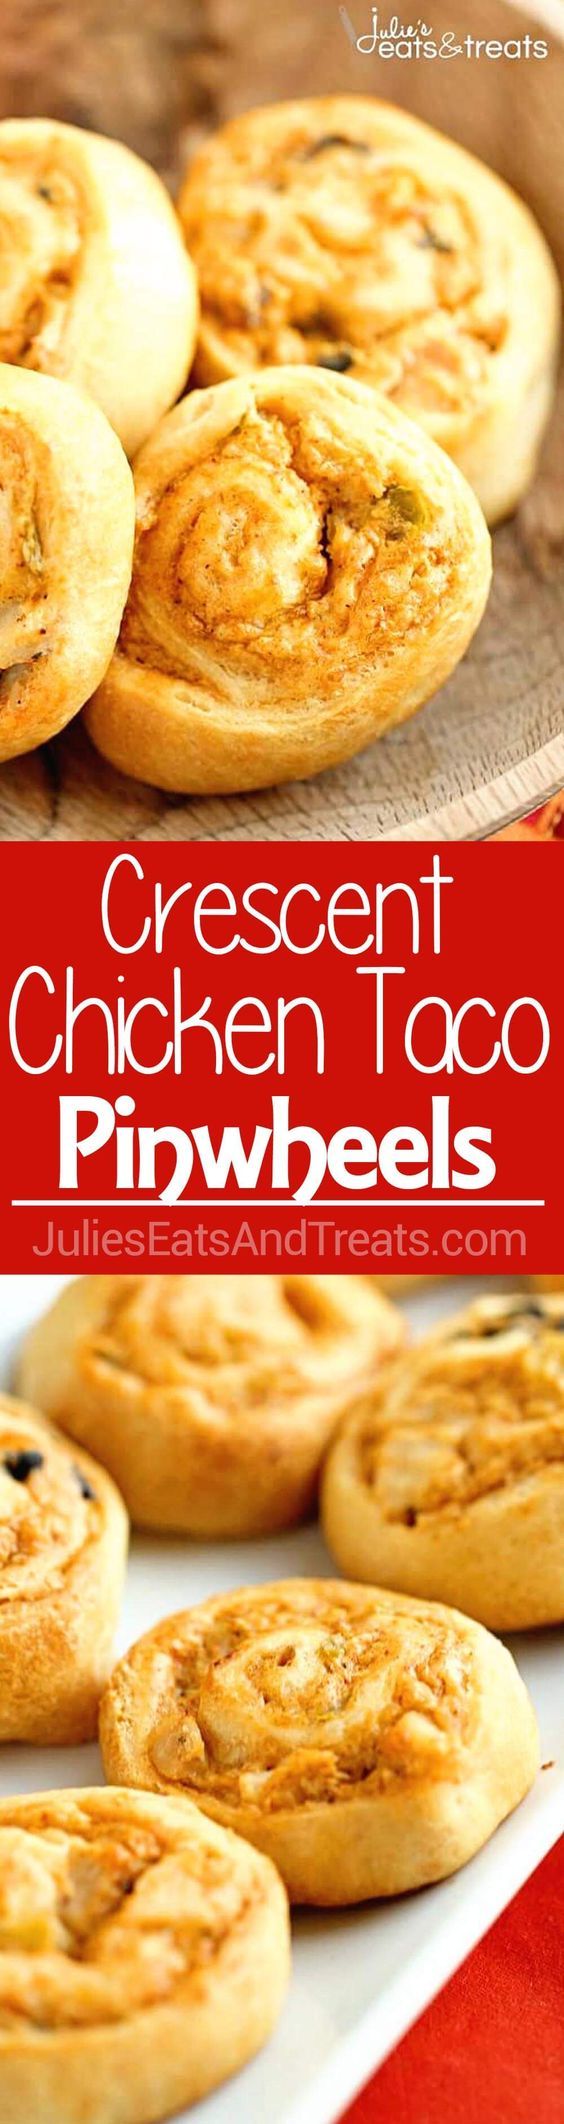 Crescent Chicken Taco Pinwheels - An easy appetizer recipe filled with diced chicken, cream cheese, taco seasoning, and green chiles! via @julieseats